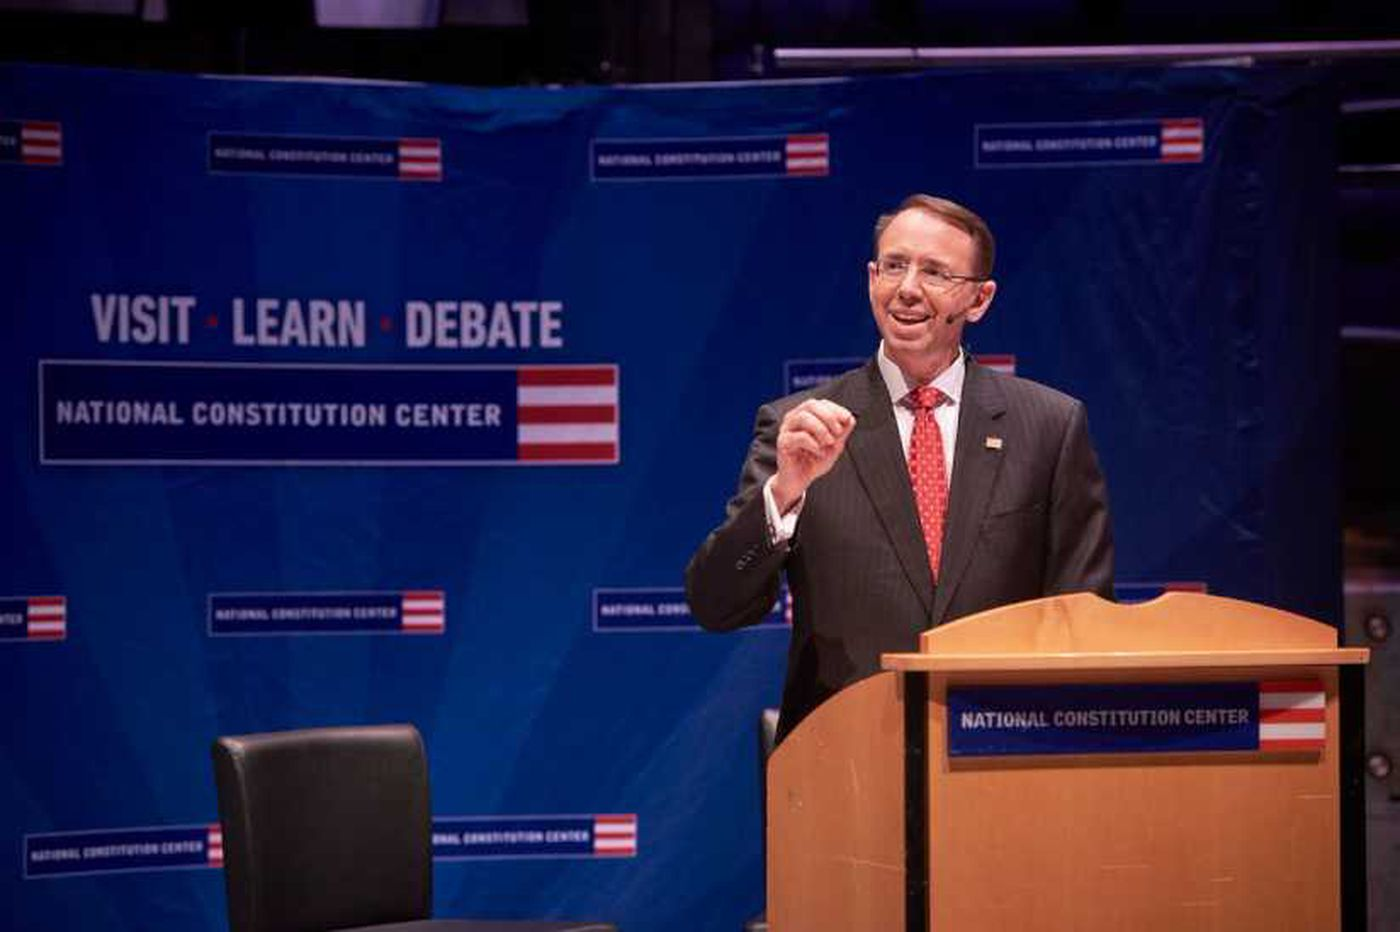 Deputy AG Rosenstein addresses Constitution Center crowd, stays mum on Mueller